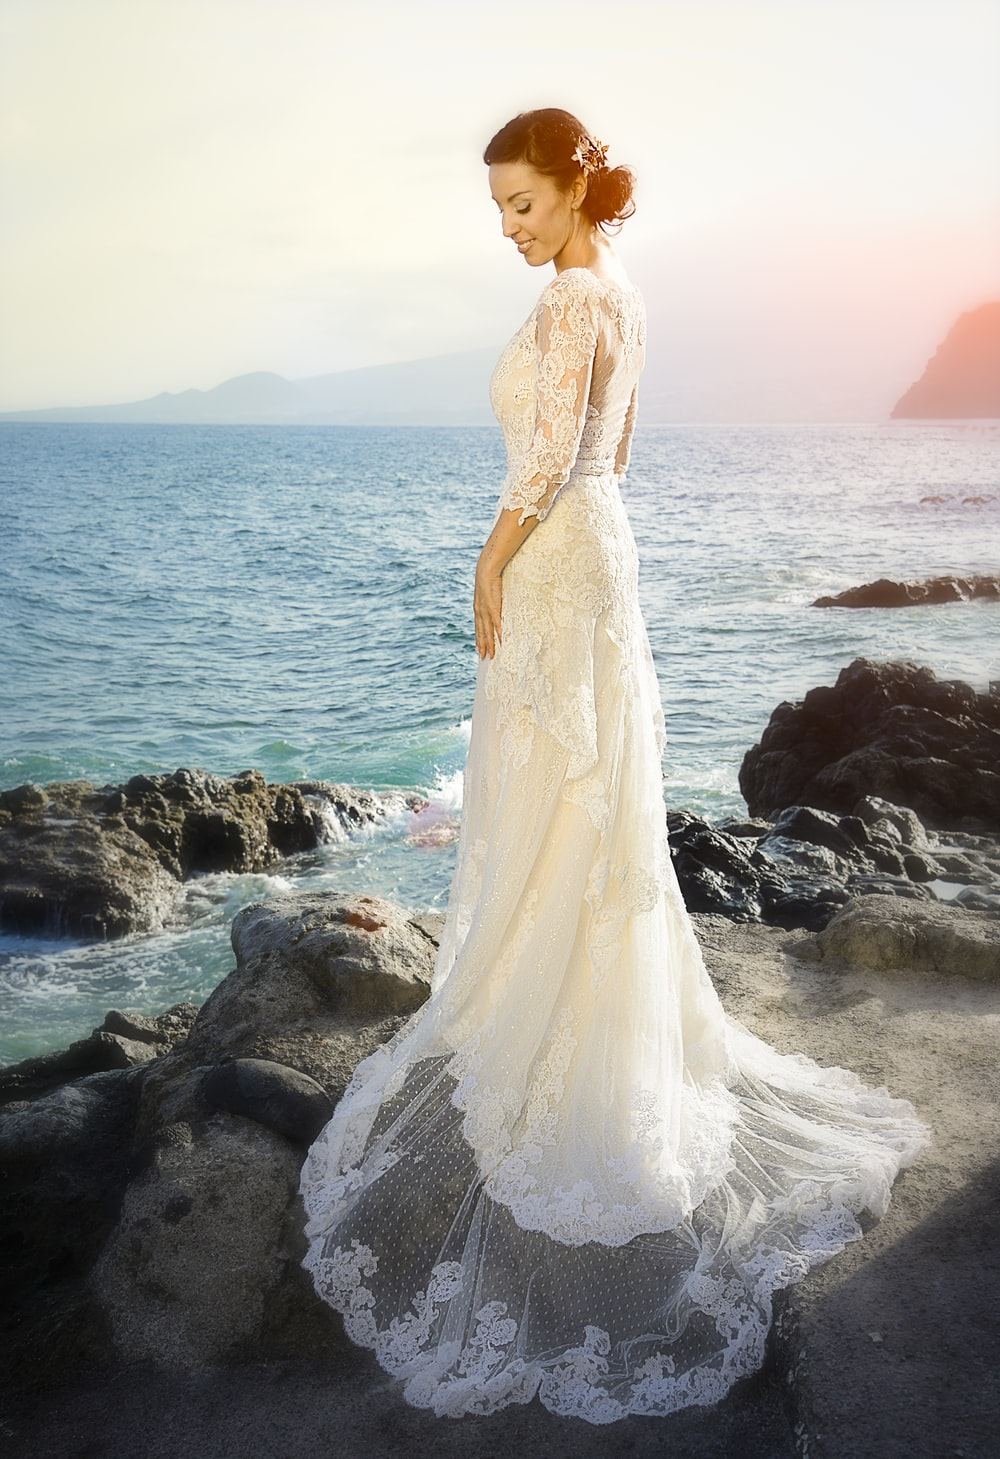 woman wearing white gown standing on rocks across body of water